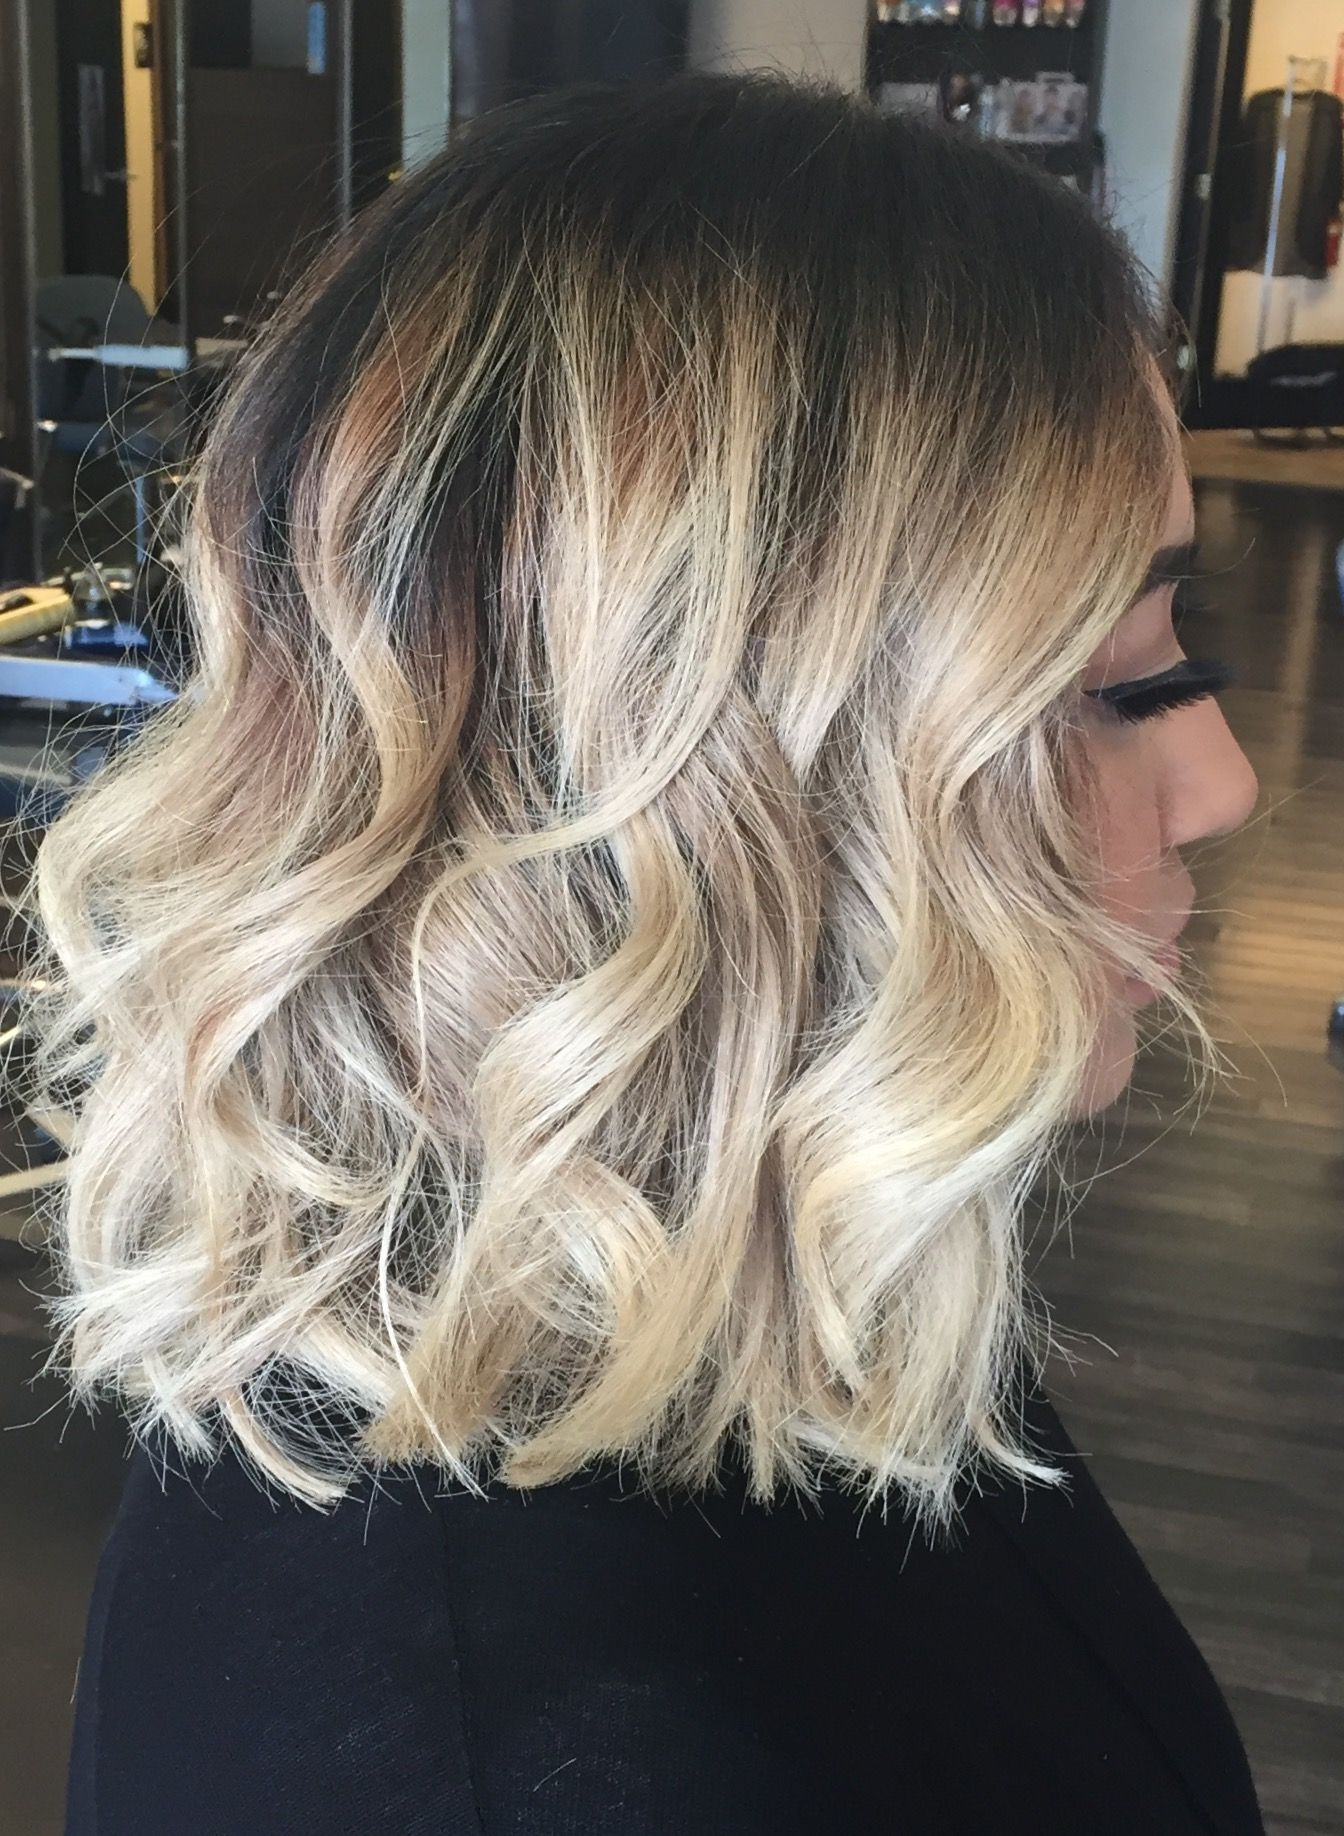 Most Popular Shaggy Pixie Hairstyles With Balayage Highlights With Regard To Balayage Ombre Highlights On Short Hair. Long Bob. Lob (View 13 of 20)